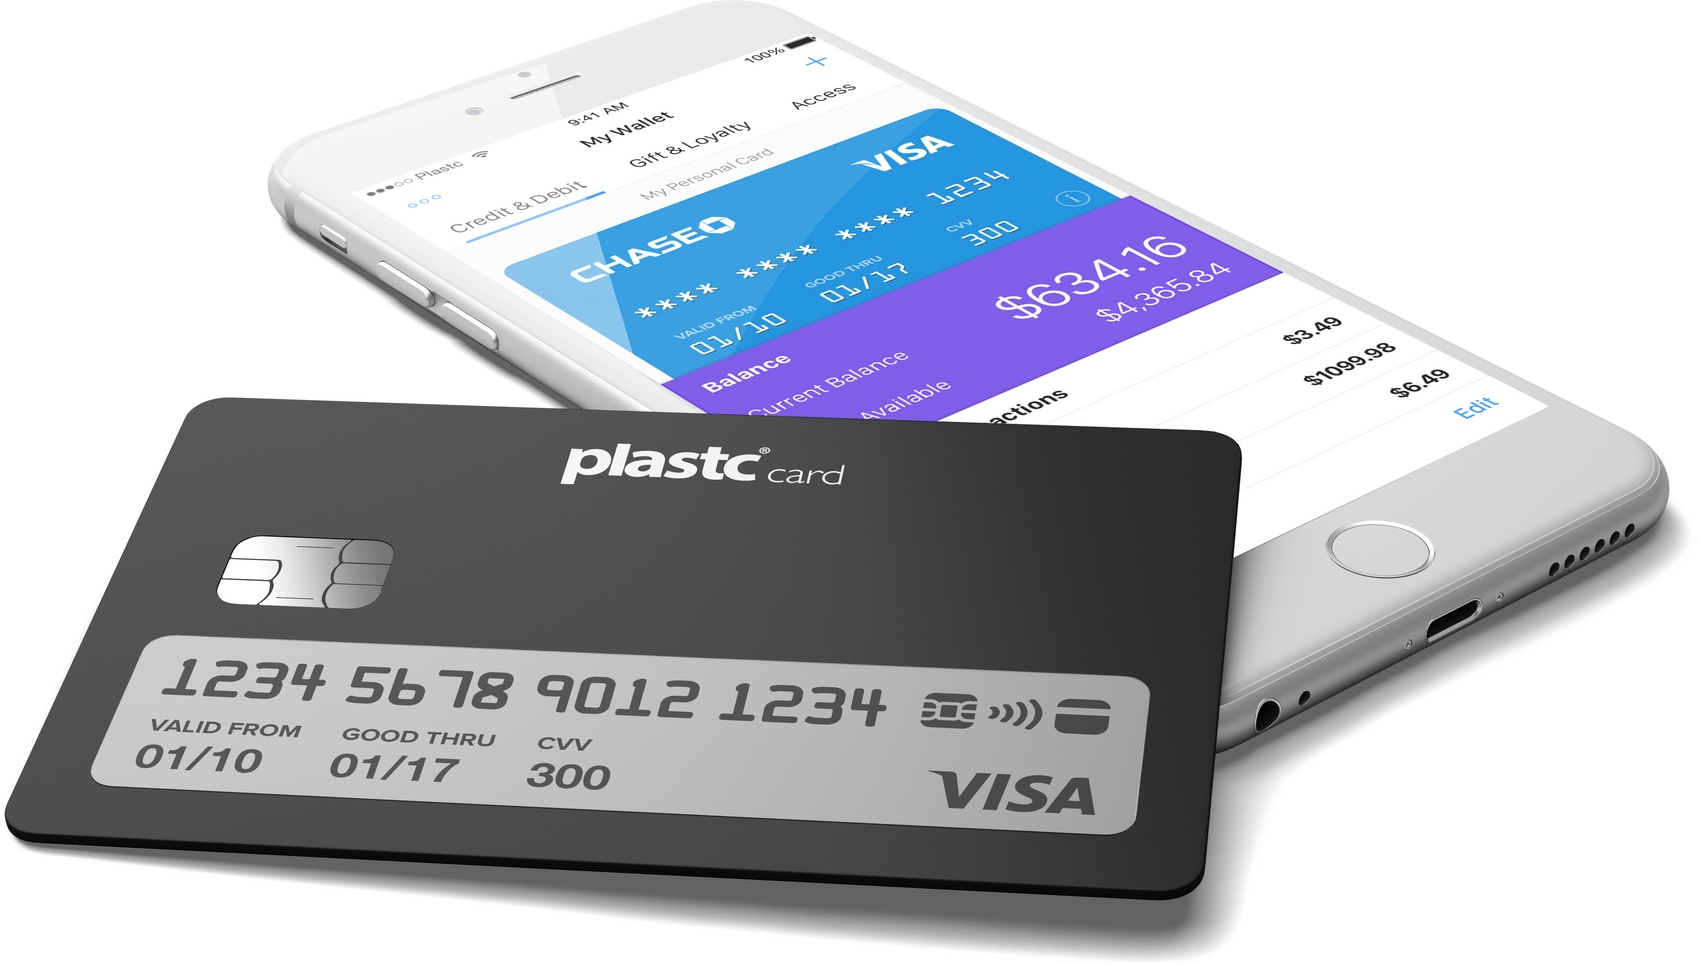 Plastc Smart Cards Raise $9M In Pre-Orders, Won't Ever Ship